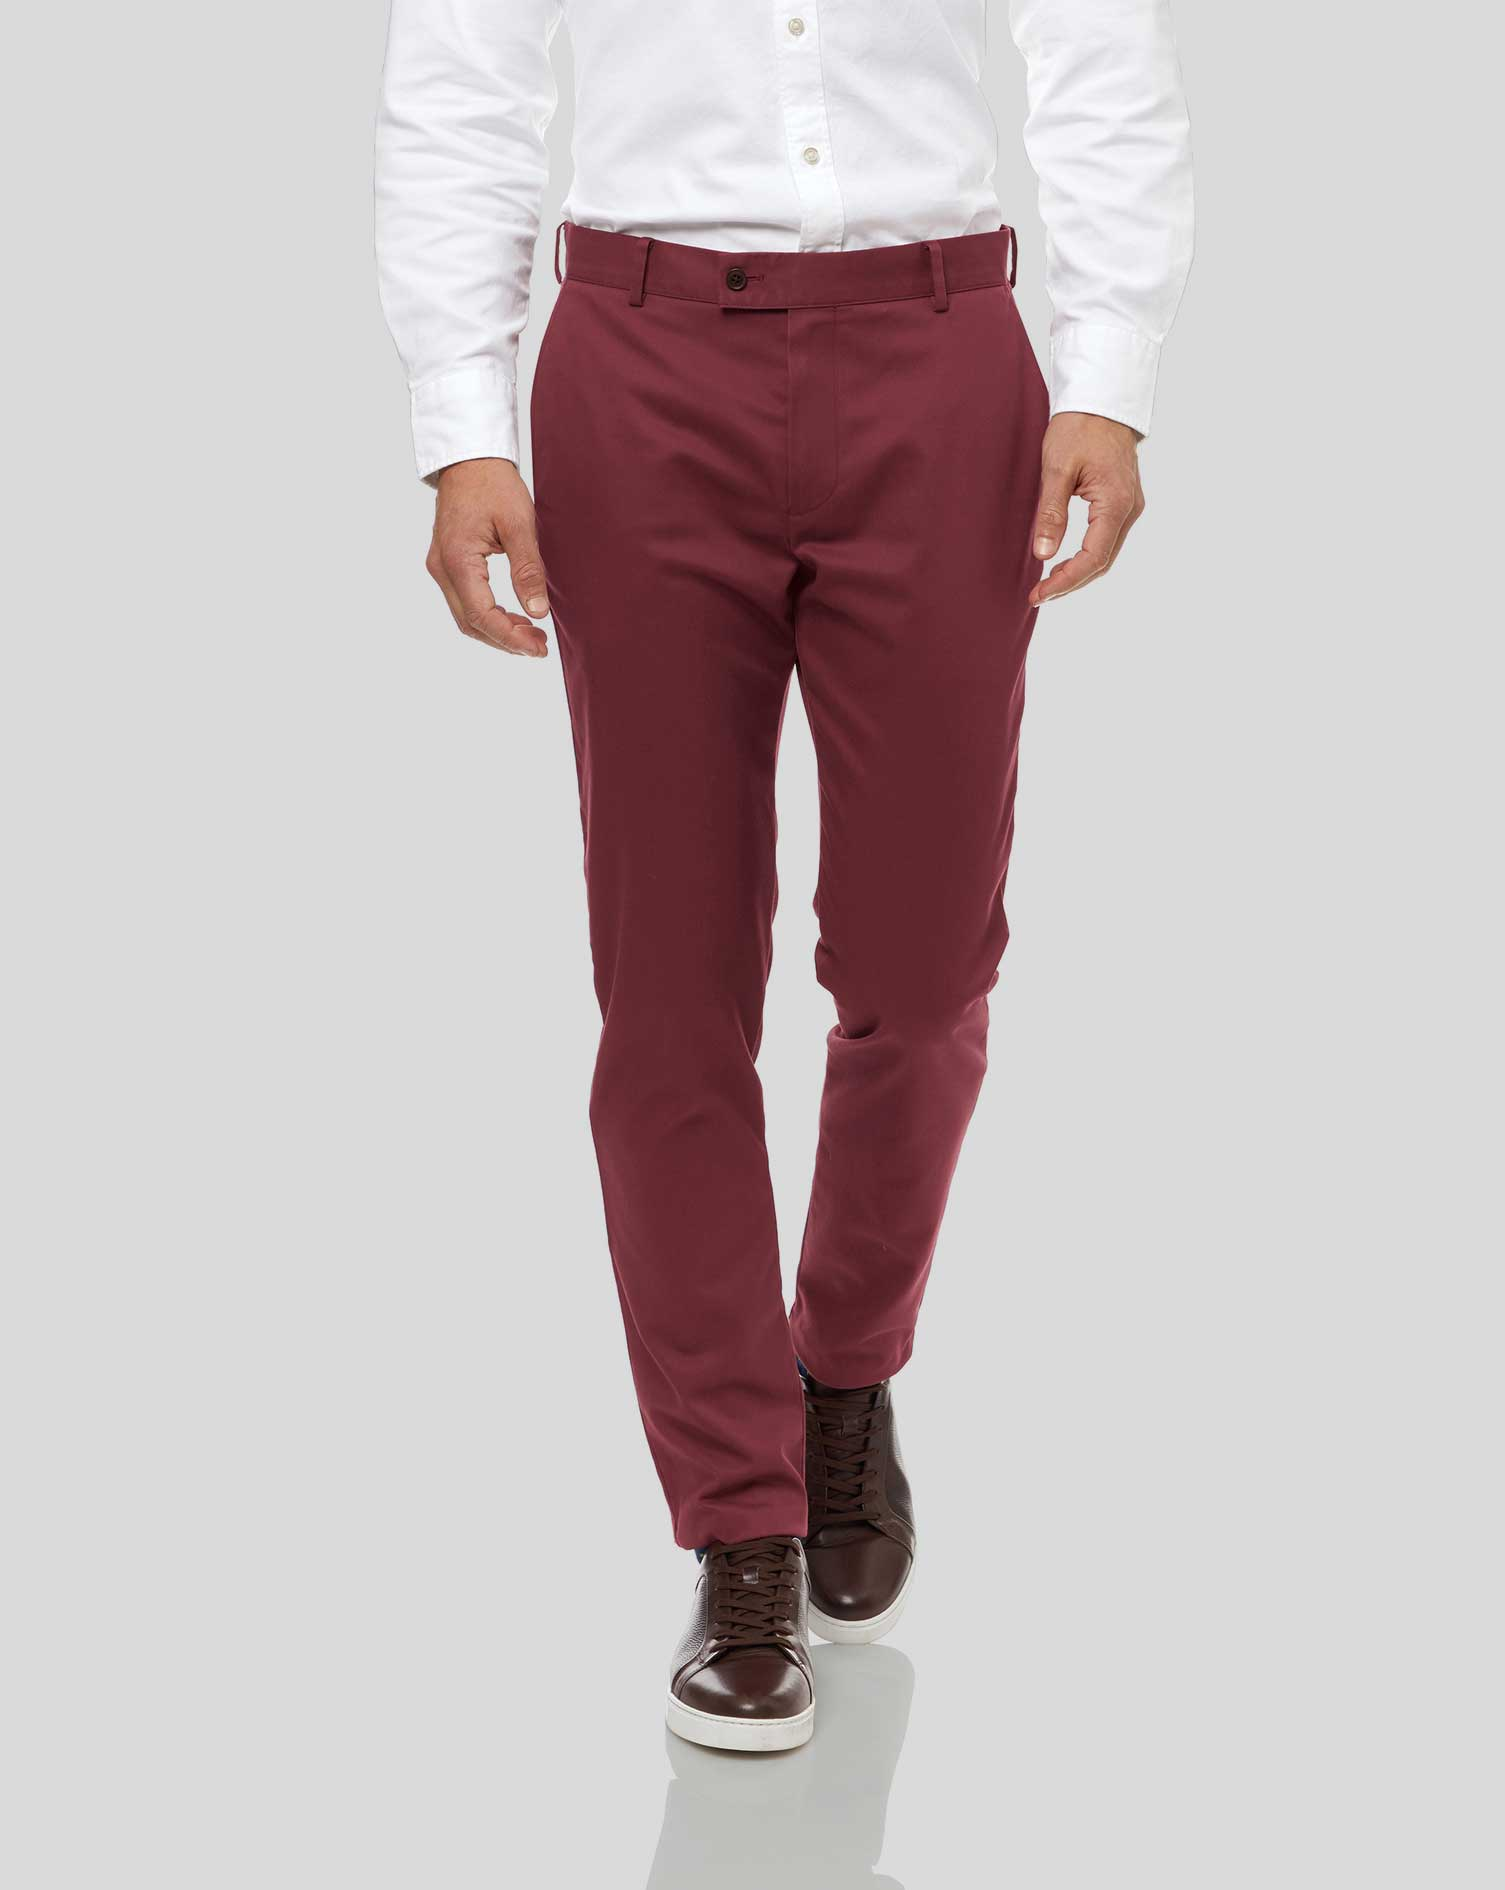 Image of Charles Tyrwhitt Ultimate Non-Iron Cotton Chino Pants - Berry Size W102 L76 by Charles Tyrwhitt